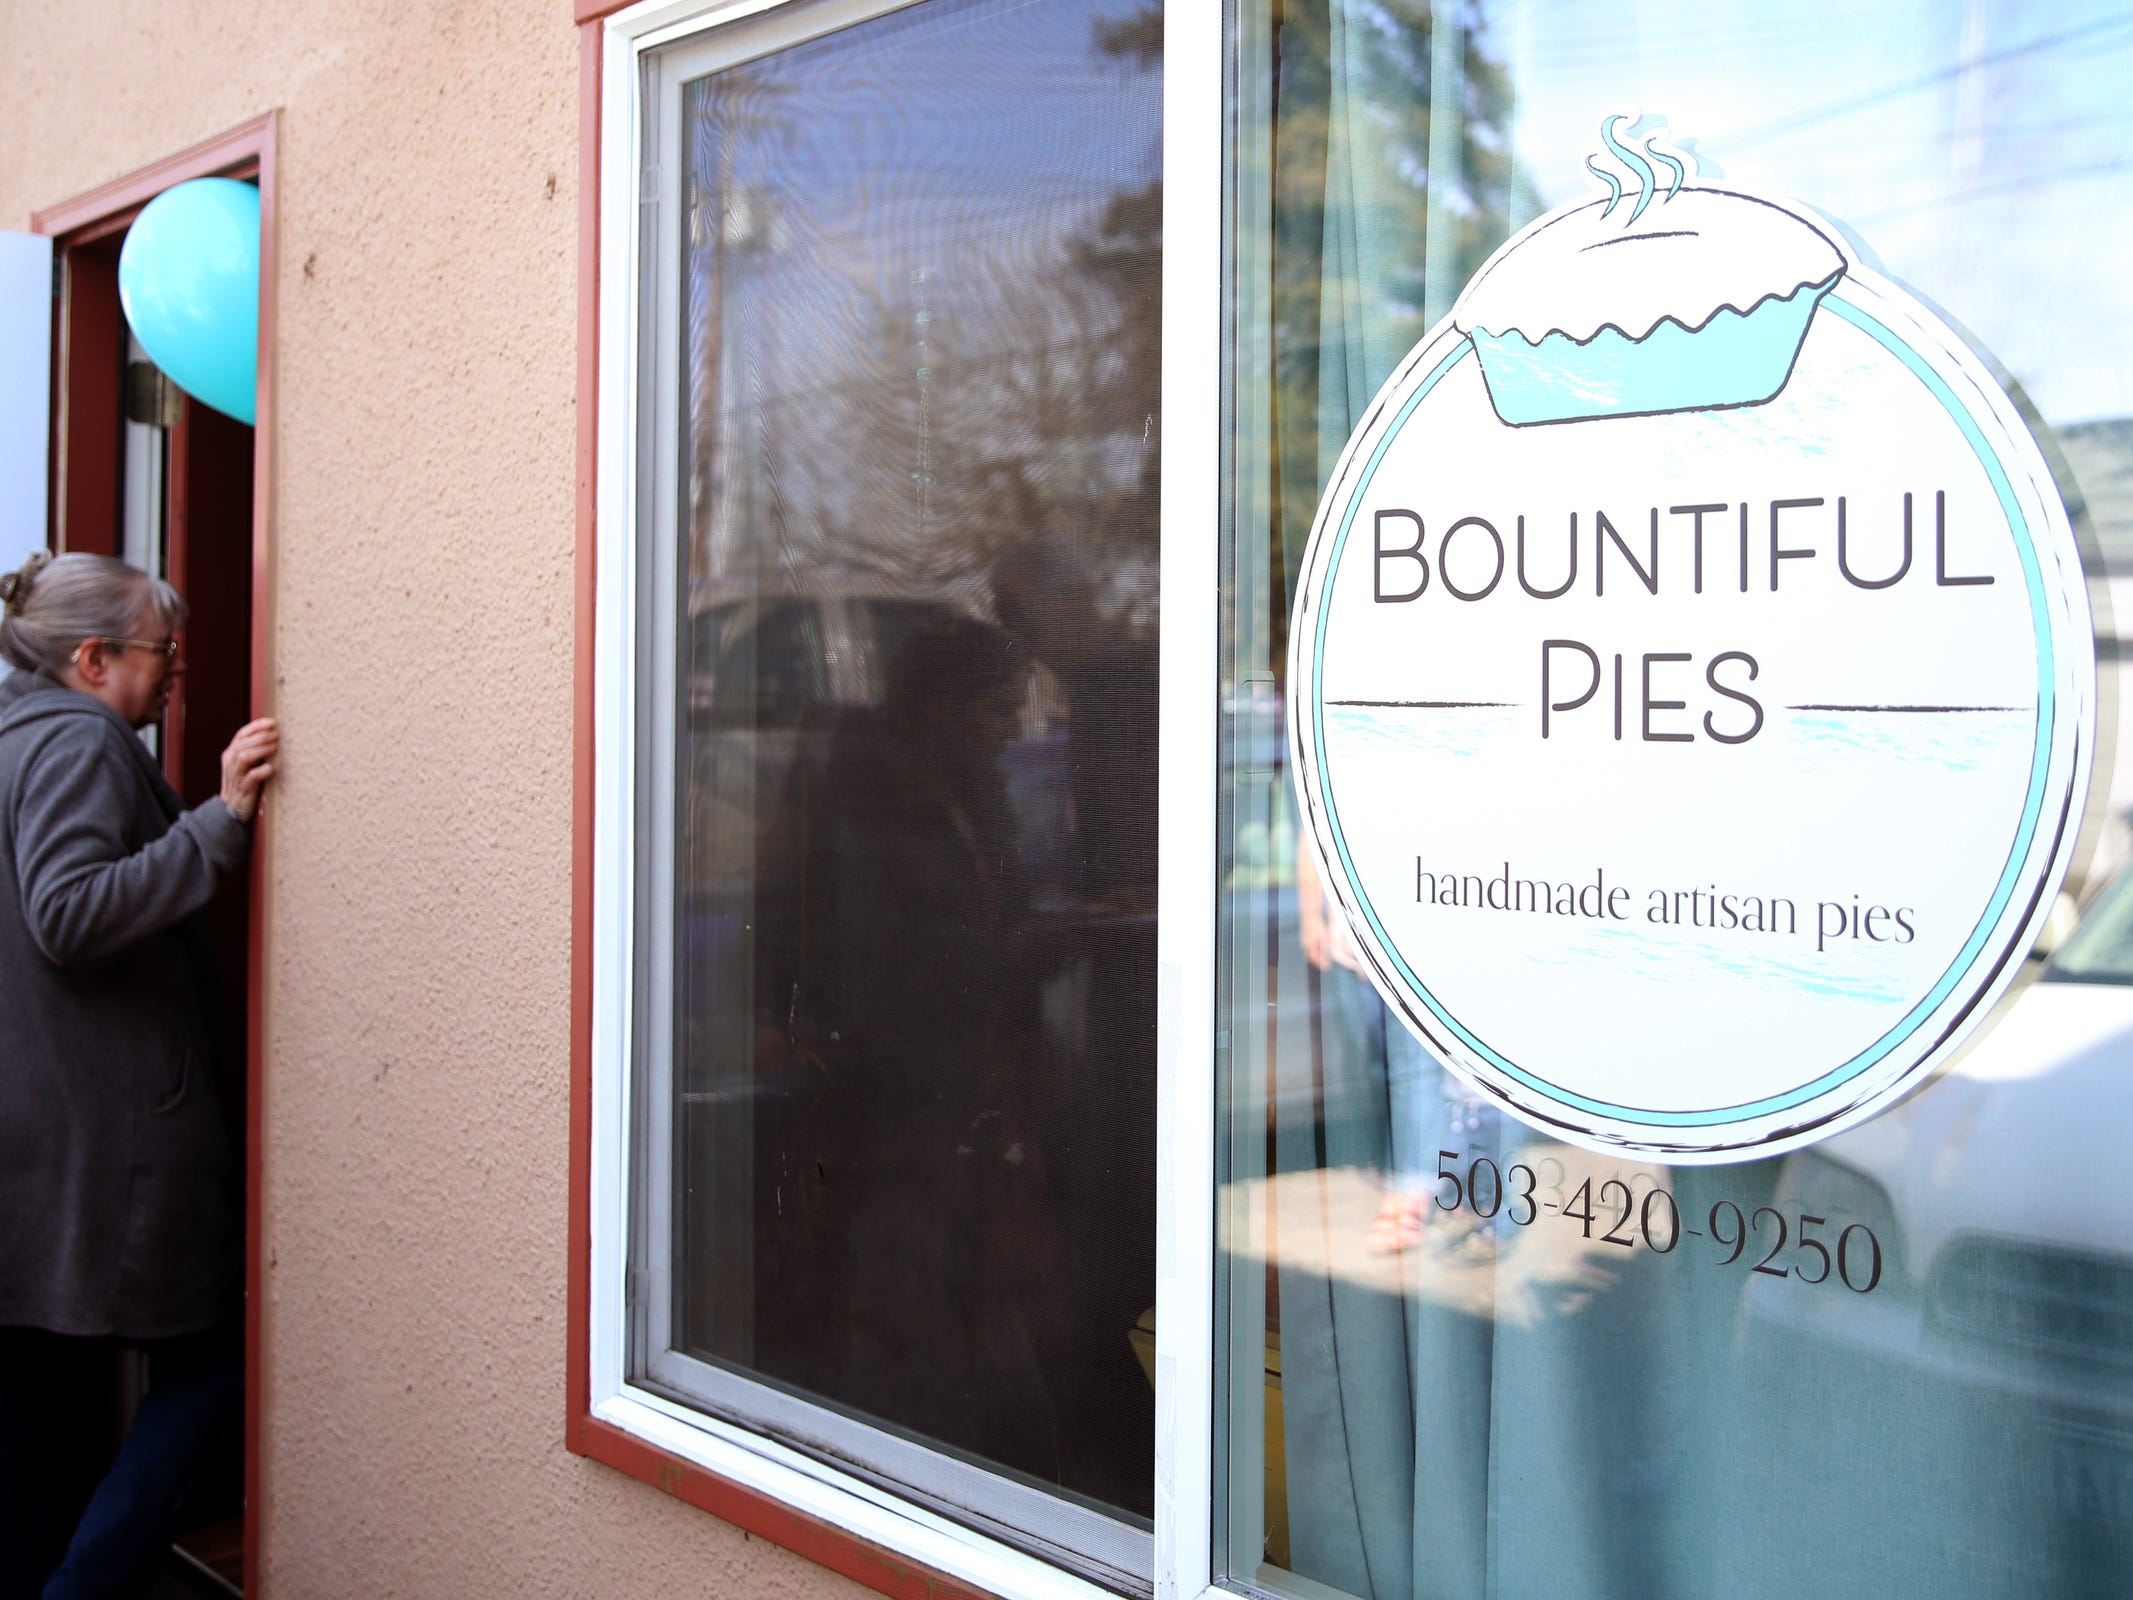 People line-up for free samples during a Pi Day celebration and shop opening at Bountiful Pies in West Salem on March 14, 2019.